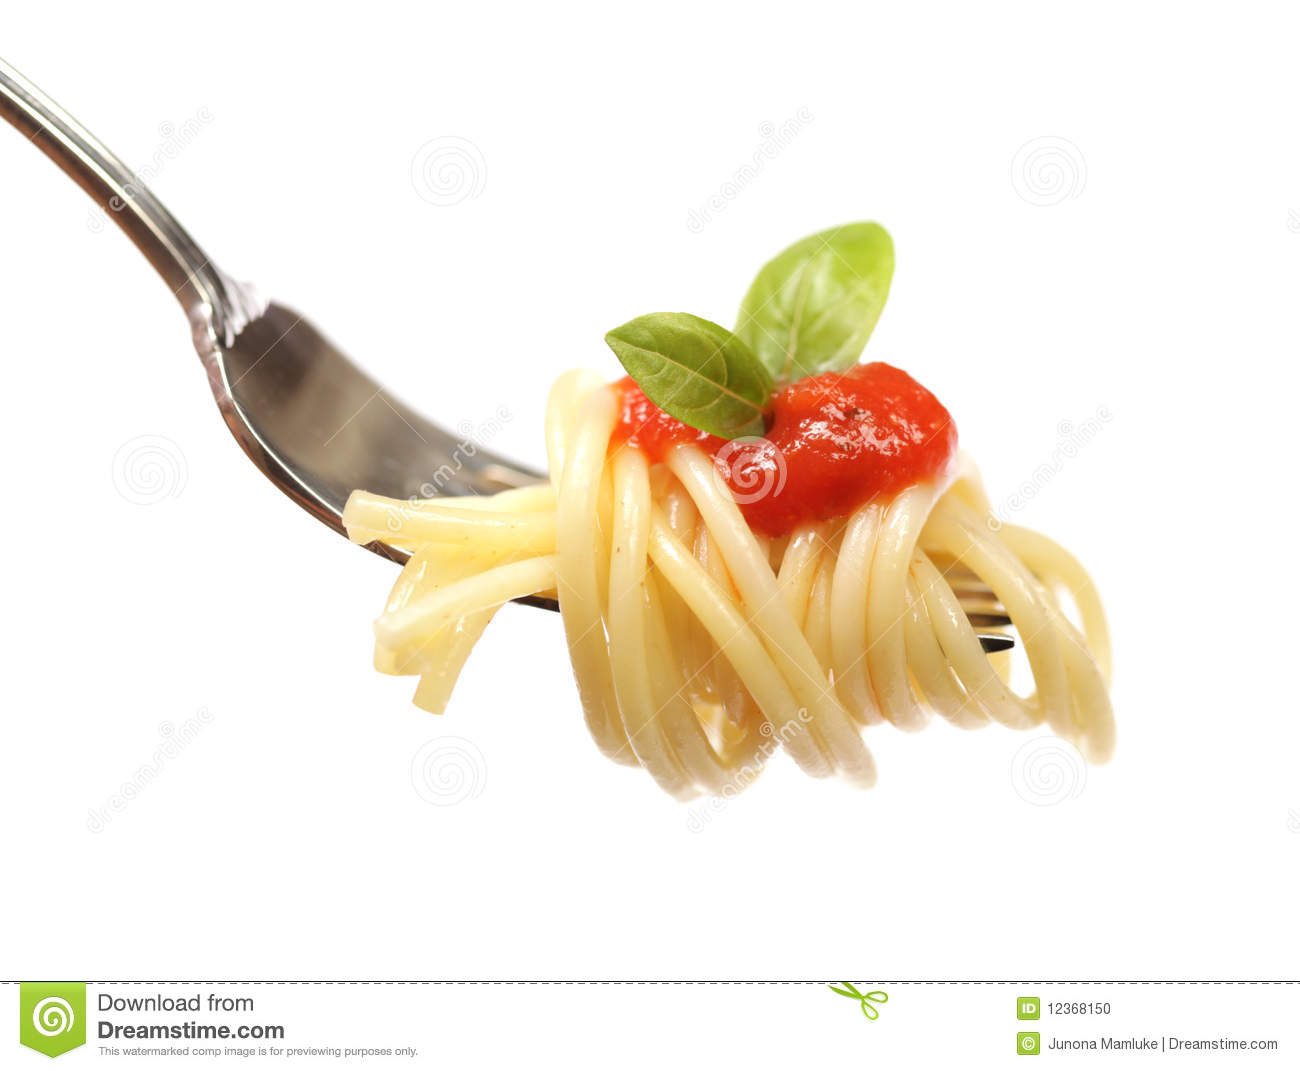 Falling Leaves Wallpaper Free Download Spaghetti On A Fork Stock Photo Image Of Nutrition Bite